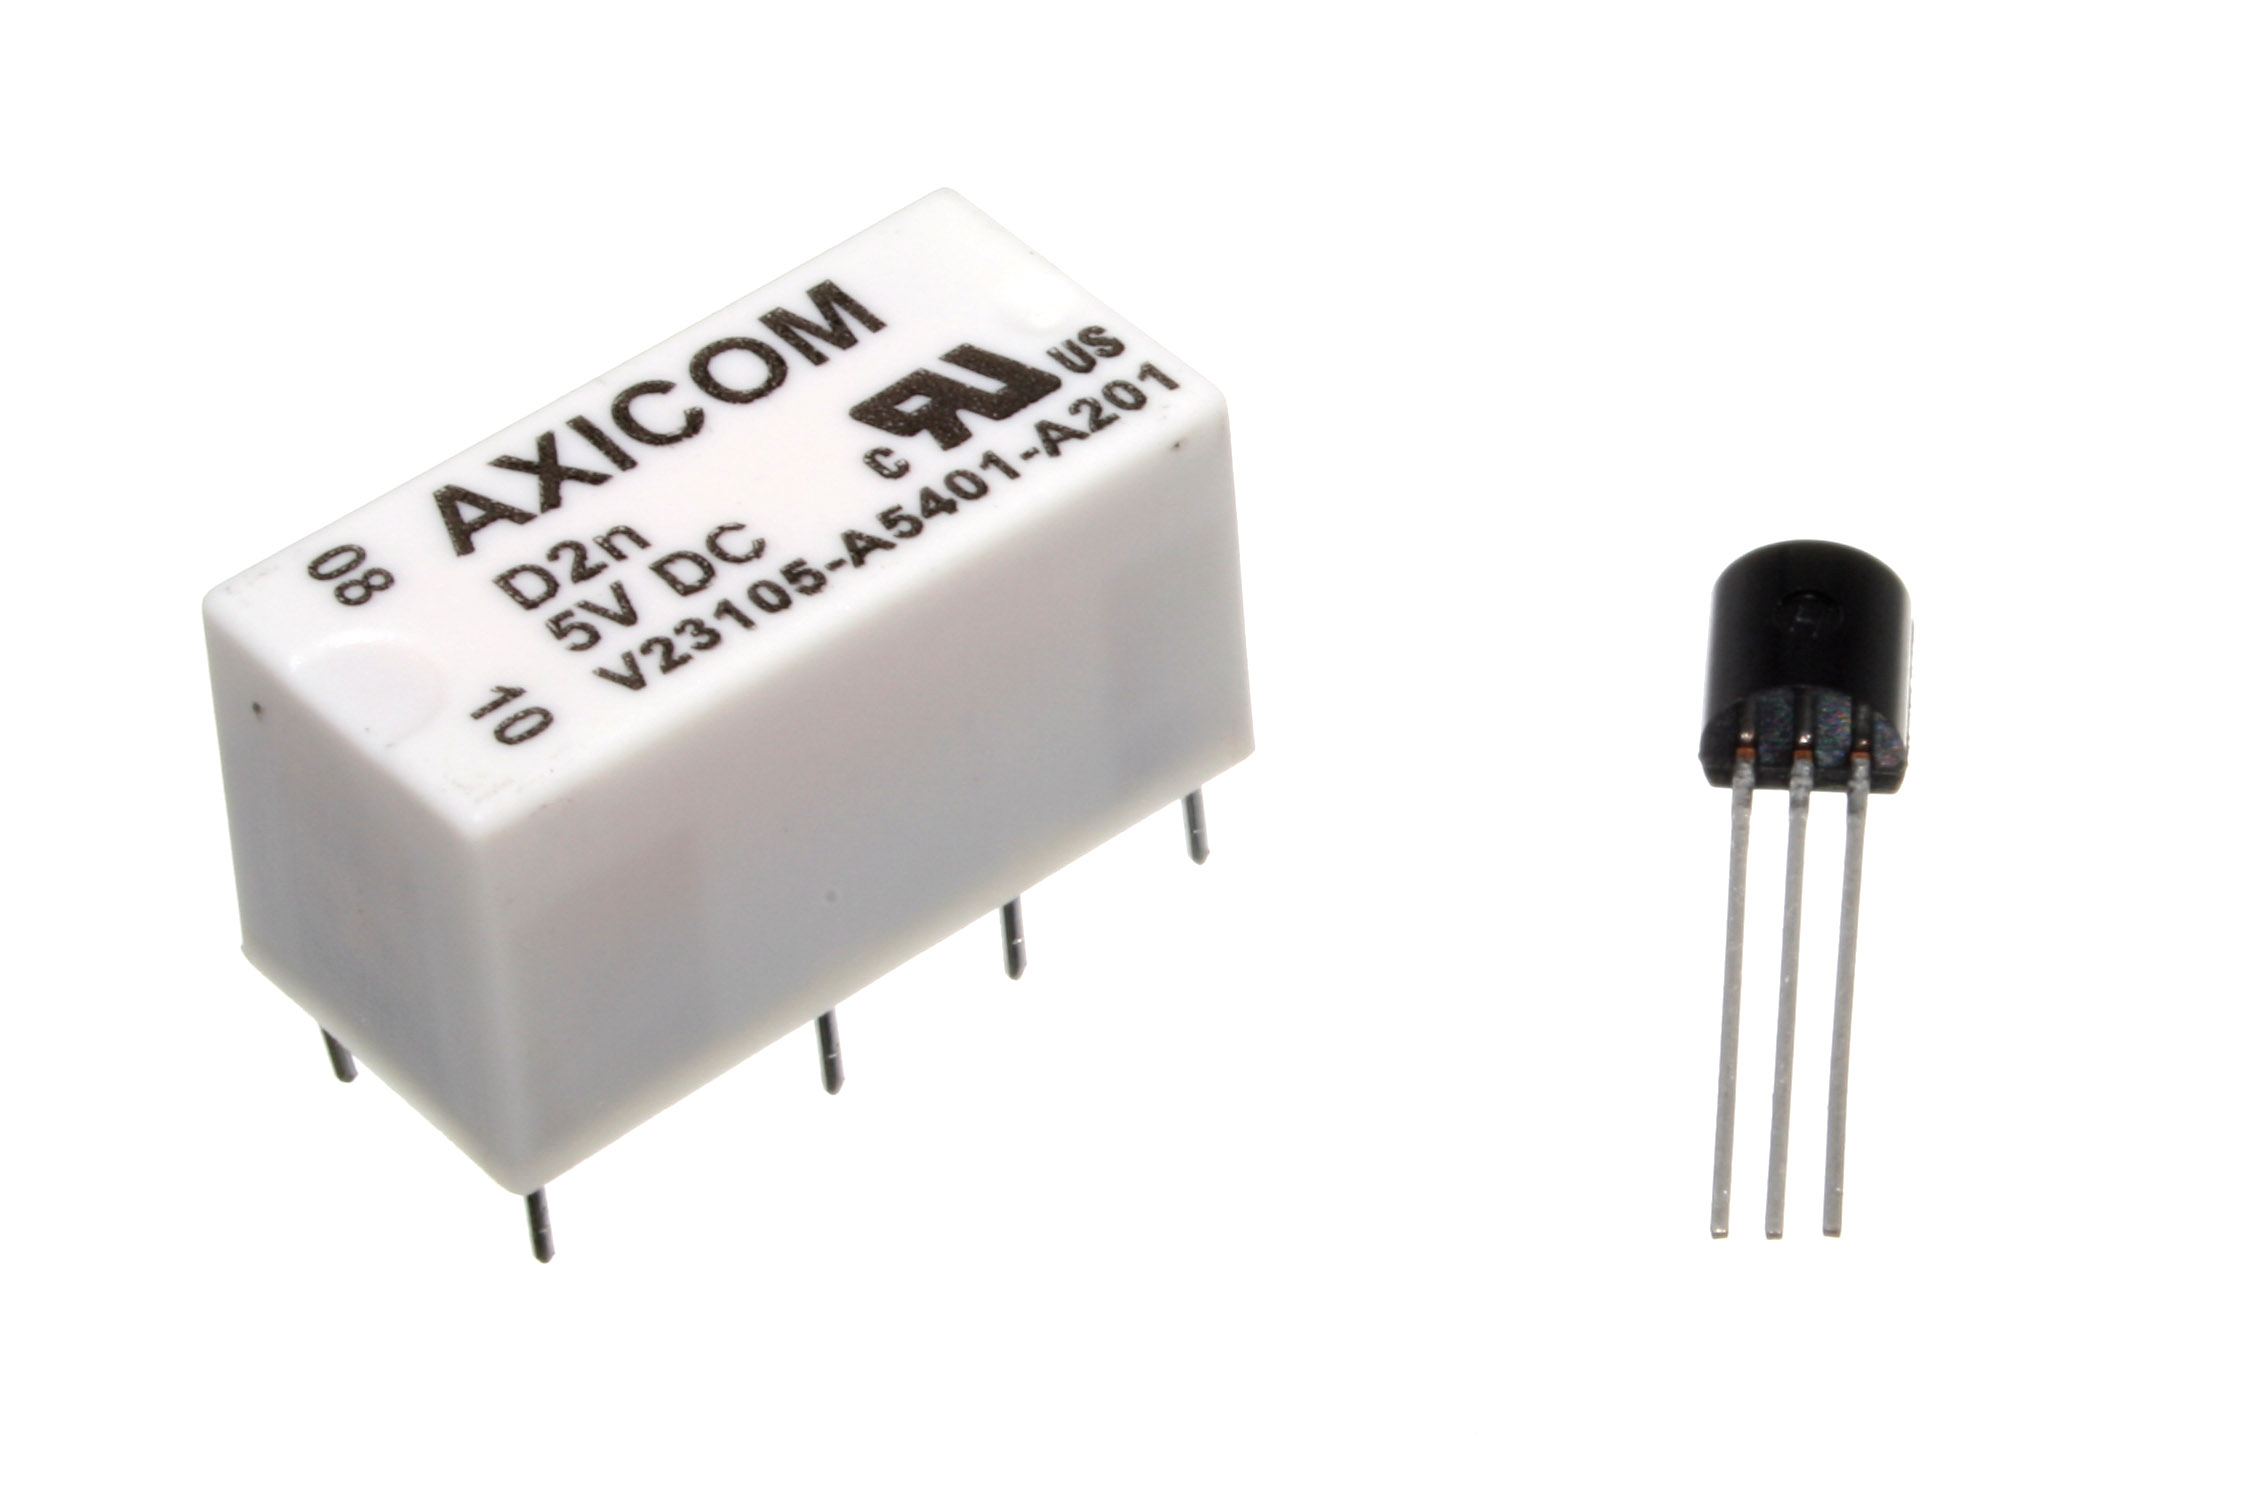 Filesmall Dip Dpdt Relay And Driving Transistor Wikimedia Commons Are Used To Drive The Circuit Shown Below Is Driver